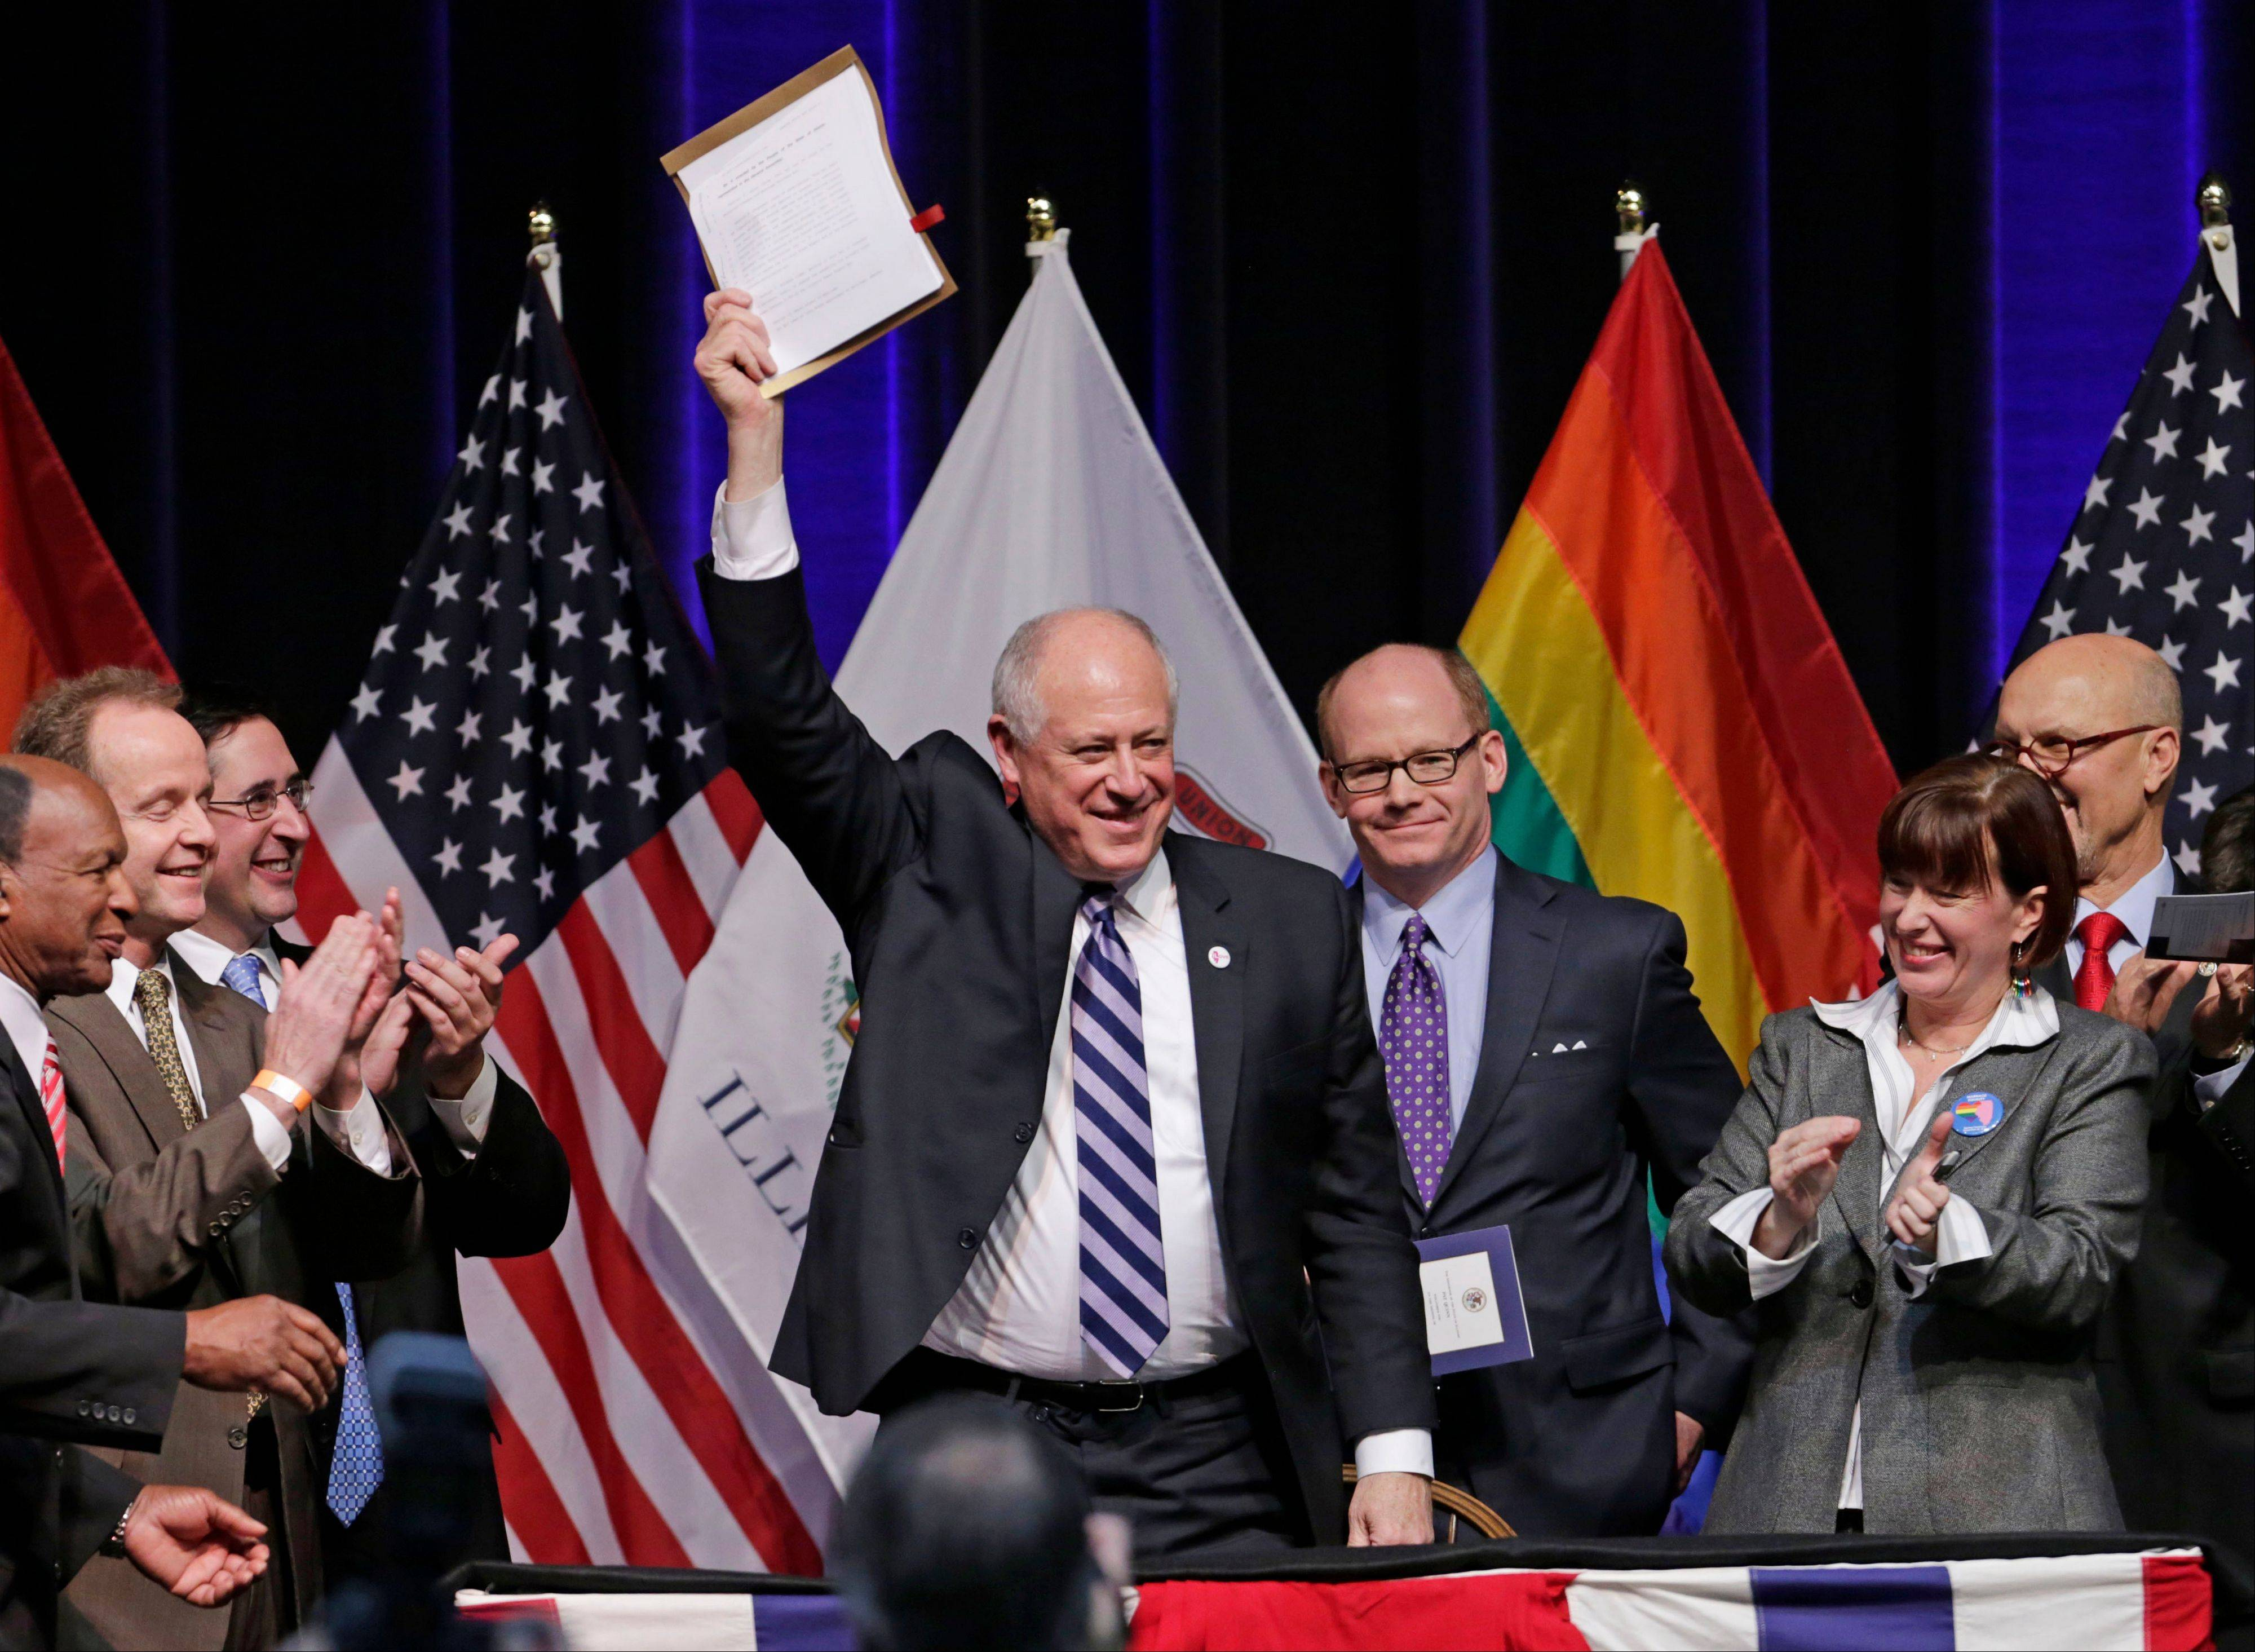 Gov. Pat Quinn acknowledges the applause after signing the Religious Freedom and Marriage Fairness Act into law, making Illinois the 16th state in the nation to embrace full marriage equality for same-sex couples, on Nov. 20. The law takes effect June 1, 2014.